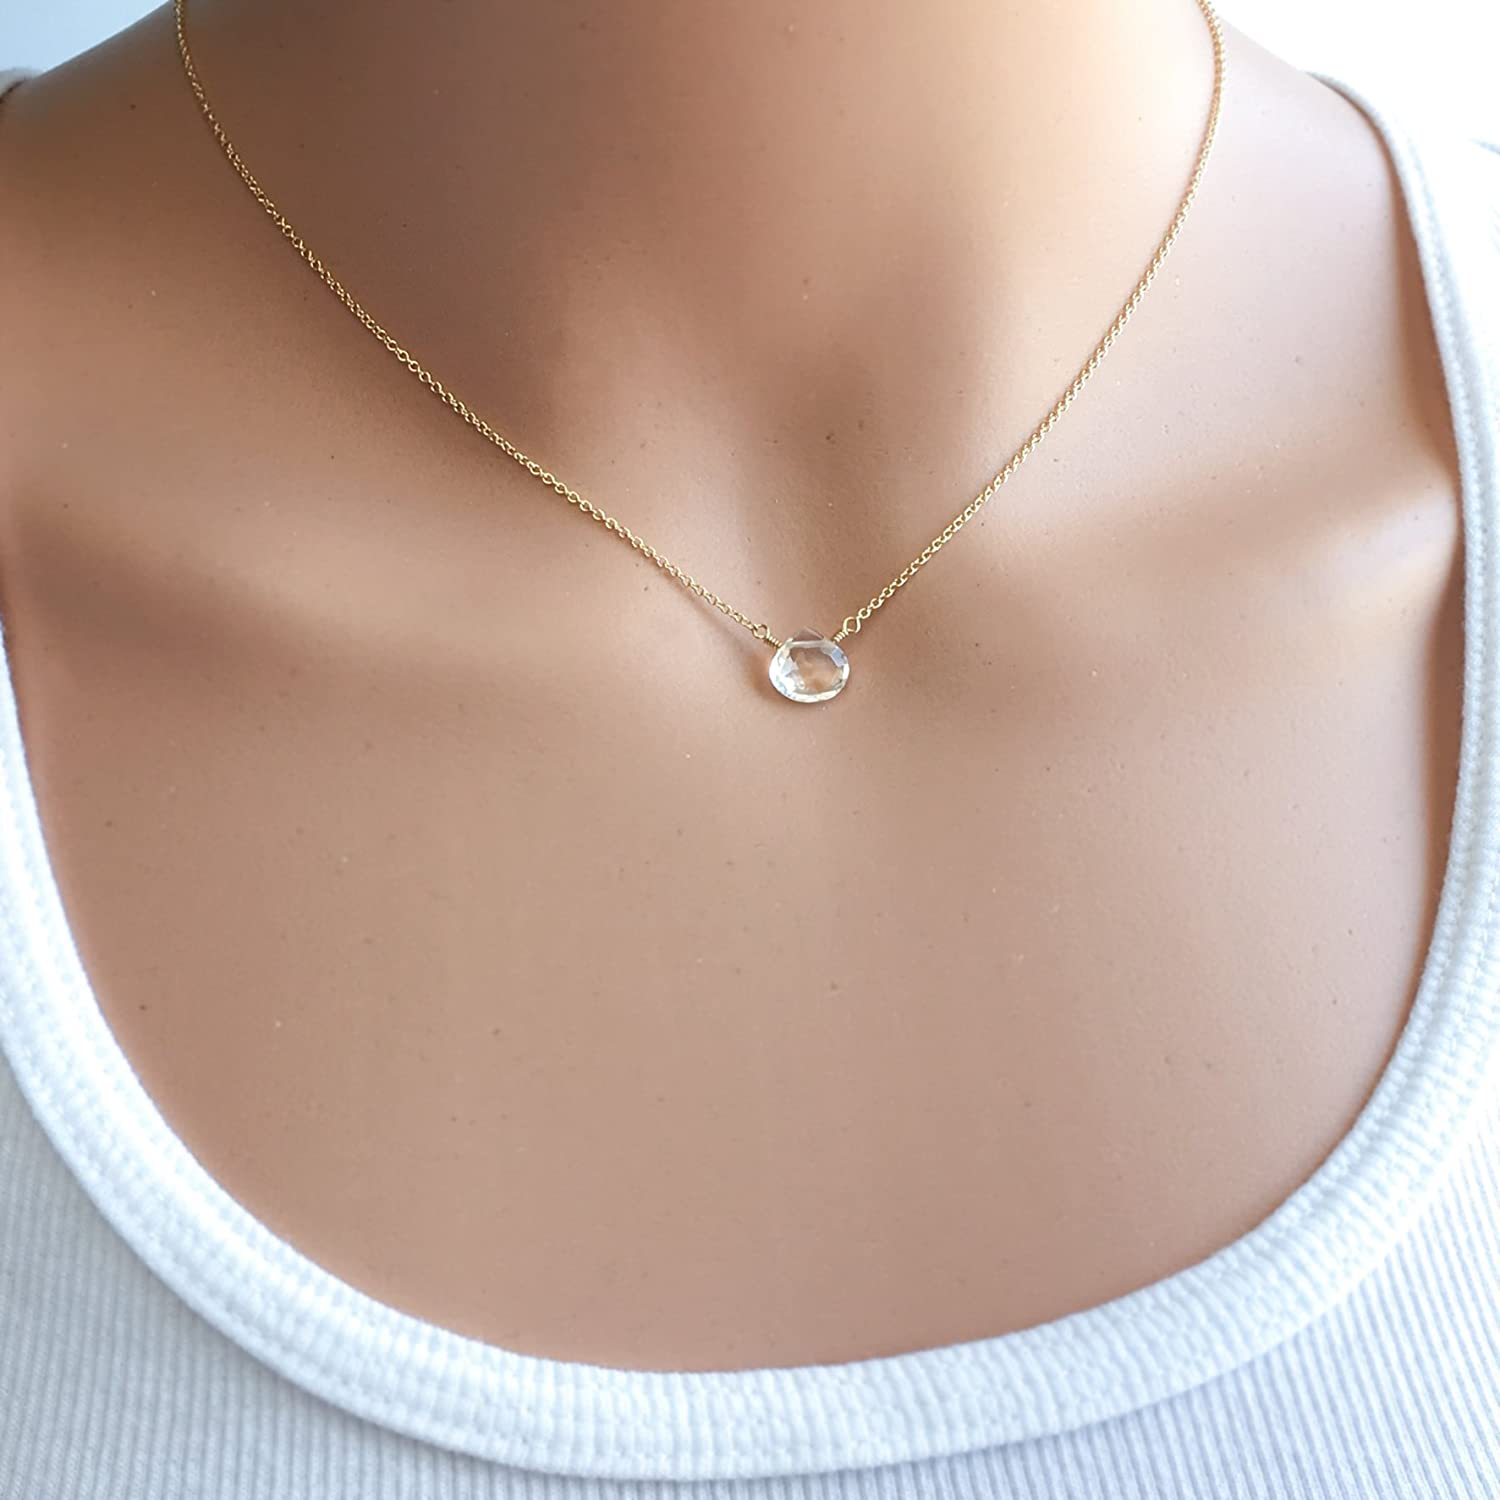 Small Crystal Quartz Choker Necklace 14-20 inches Available in Silver Rose Gold and Gold